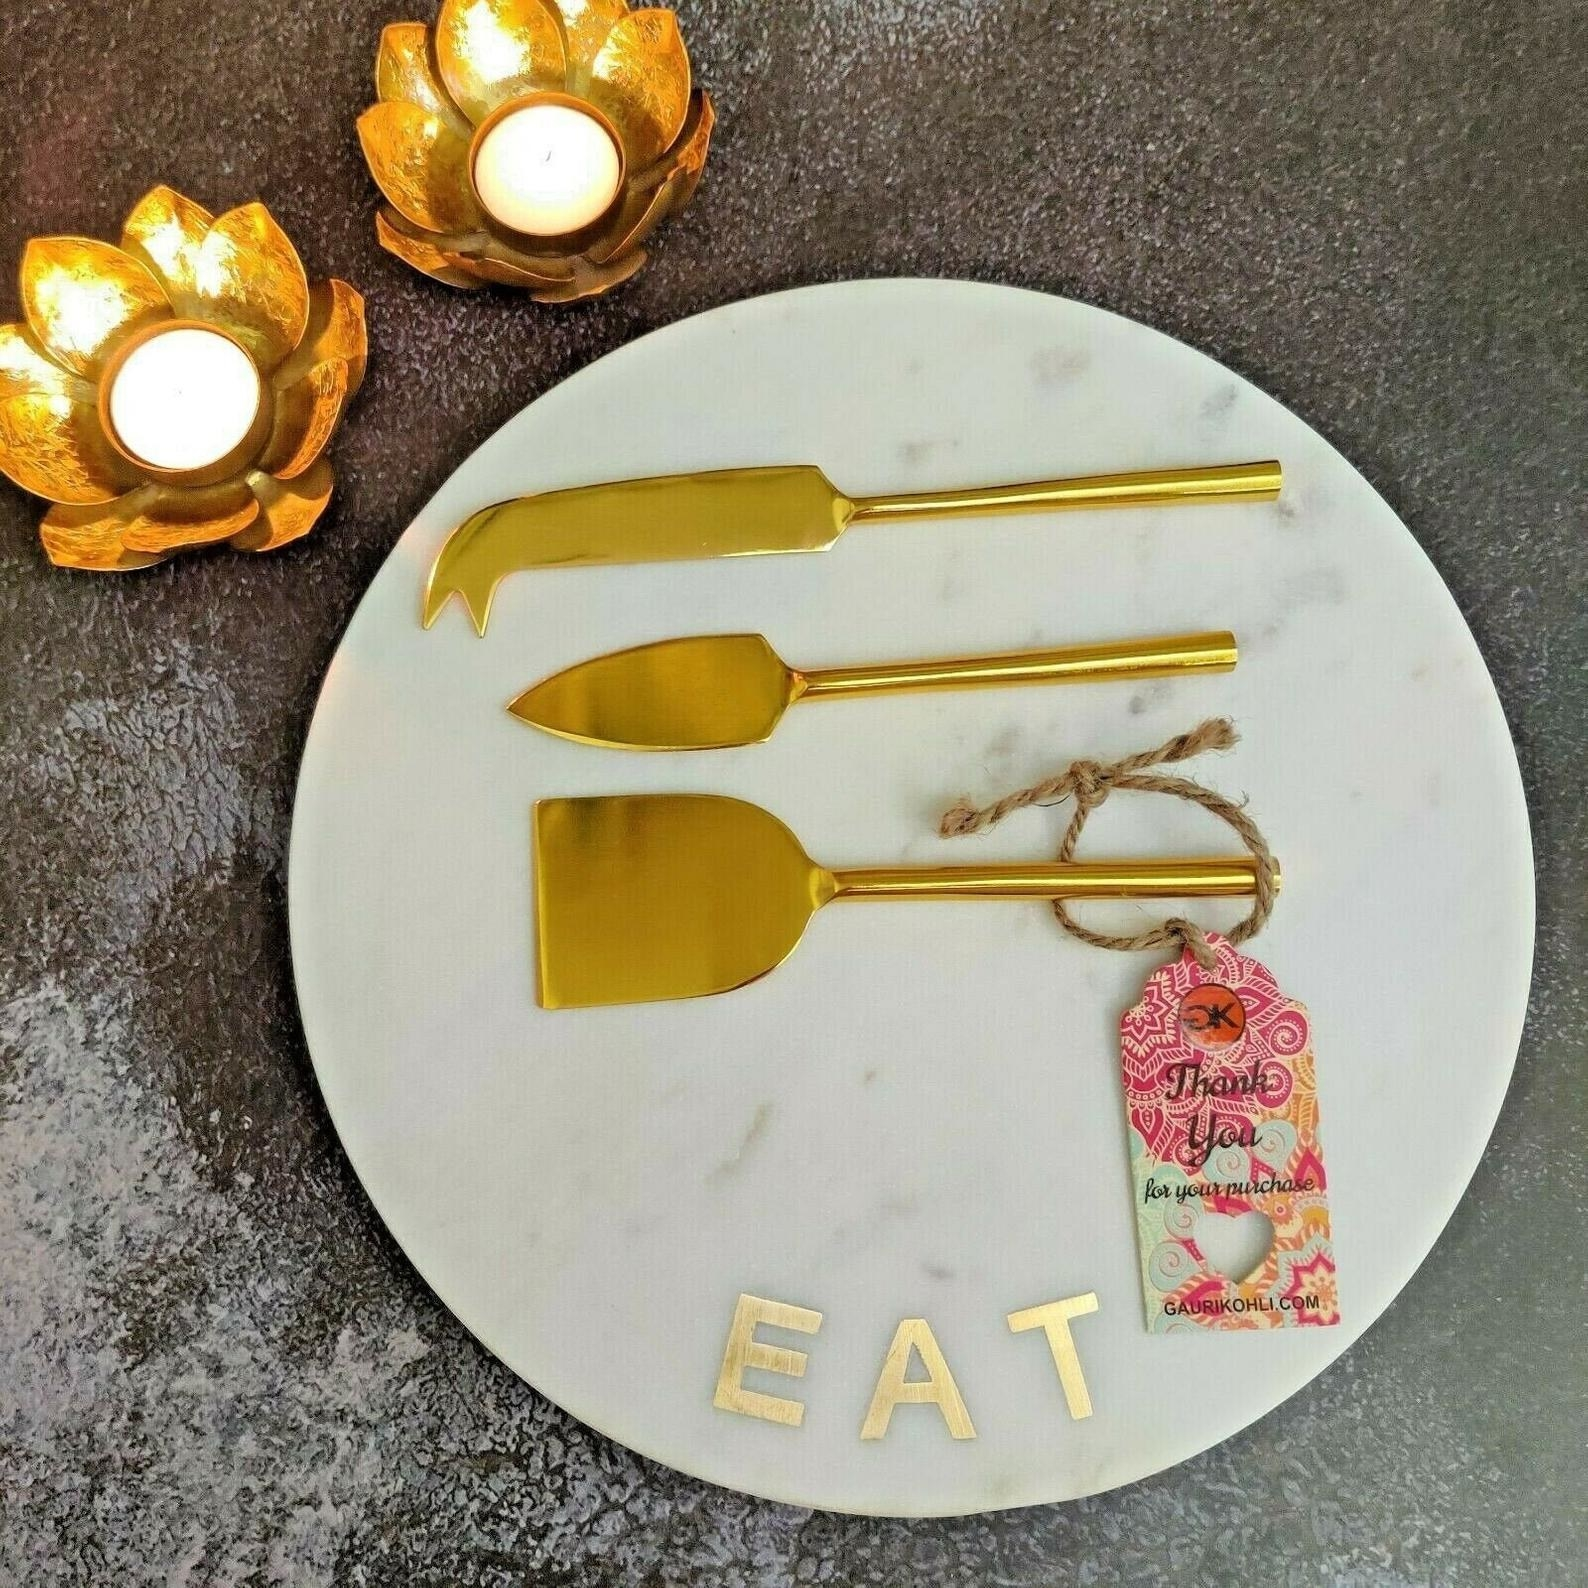 the marble plate that says eat with three gold cheese knives